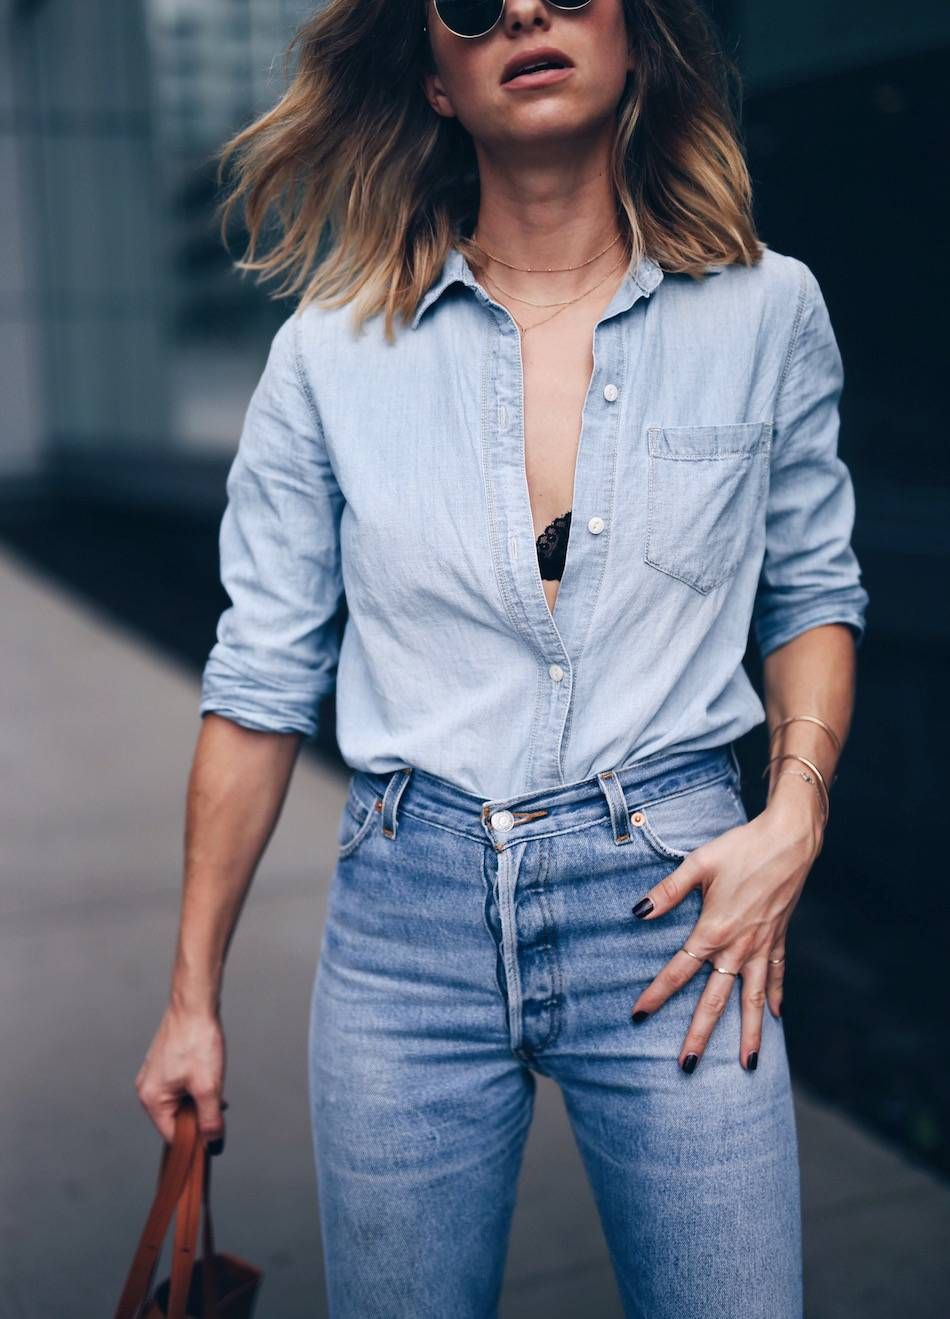 Canadian tuxedo | The August Diaries